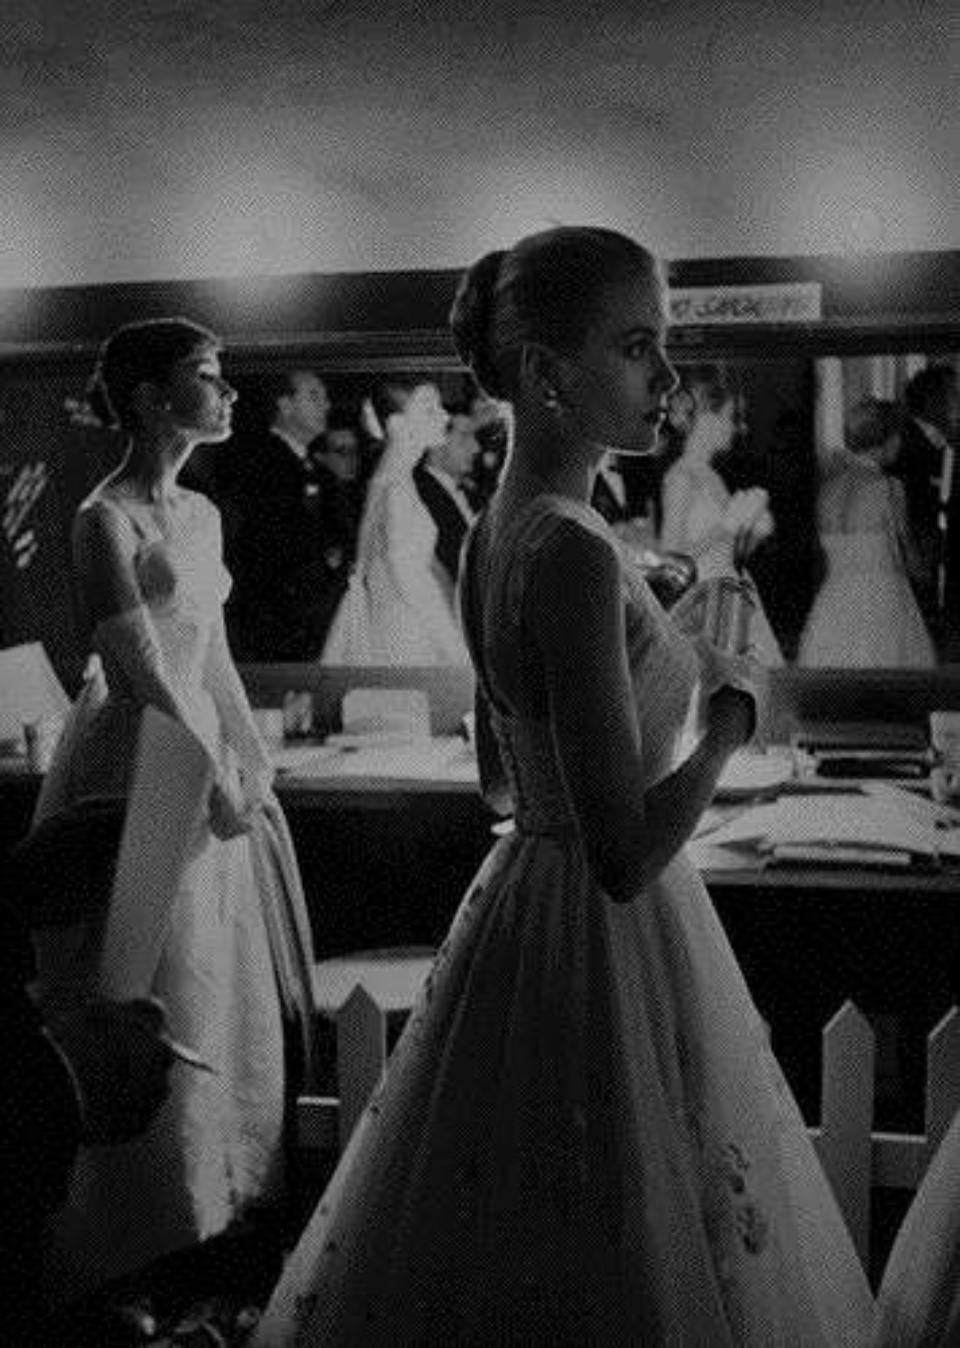 Allan Grant Audrey Hepburn & Grace Kelly Backstage at the Oscars Los Angeles Gelatin Silver Print